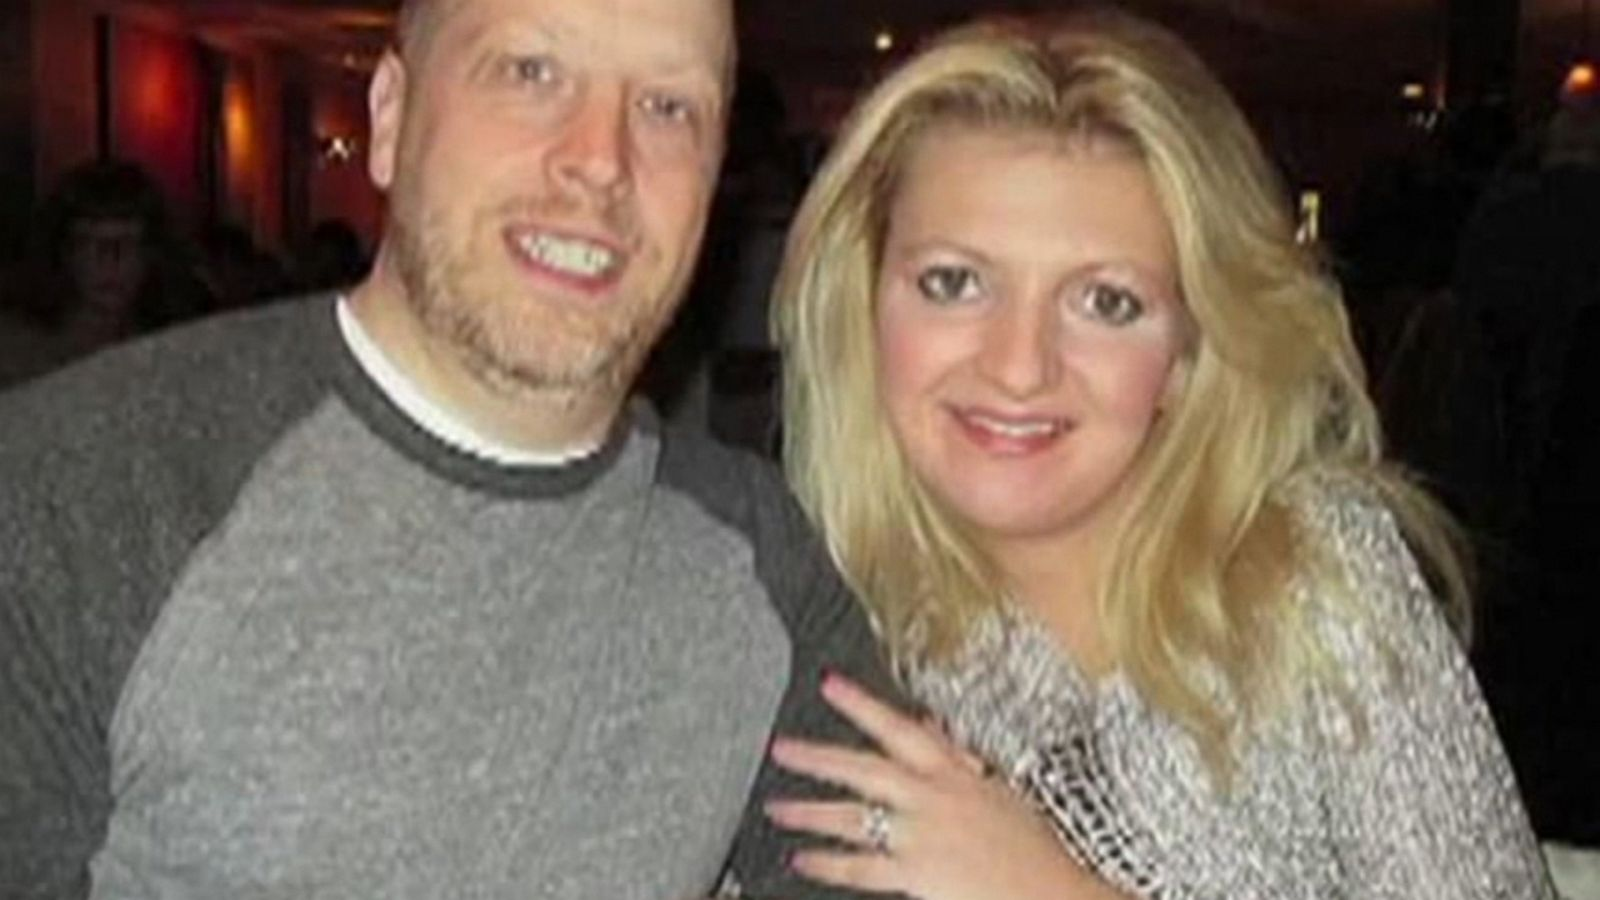 Stuck in a nightmare,' says relative of US couple who